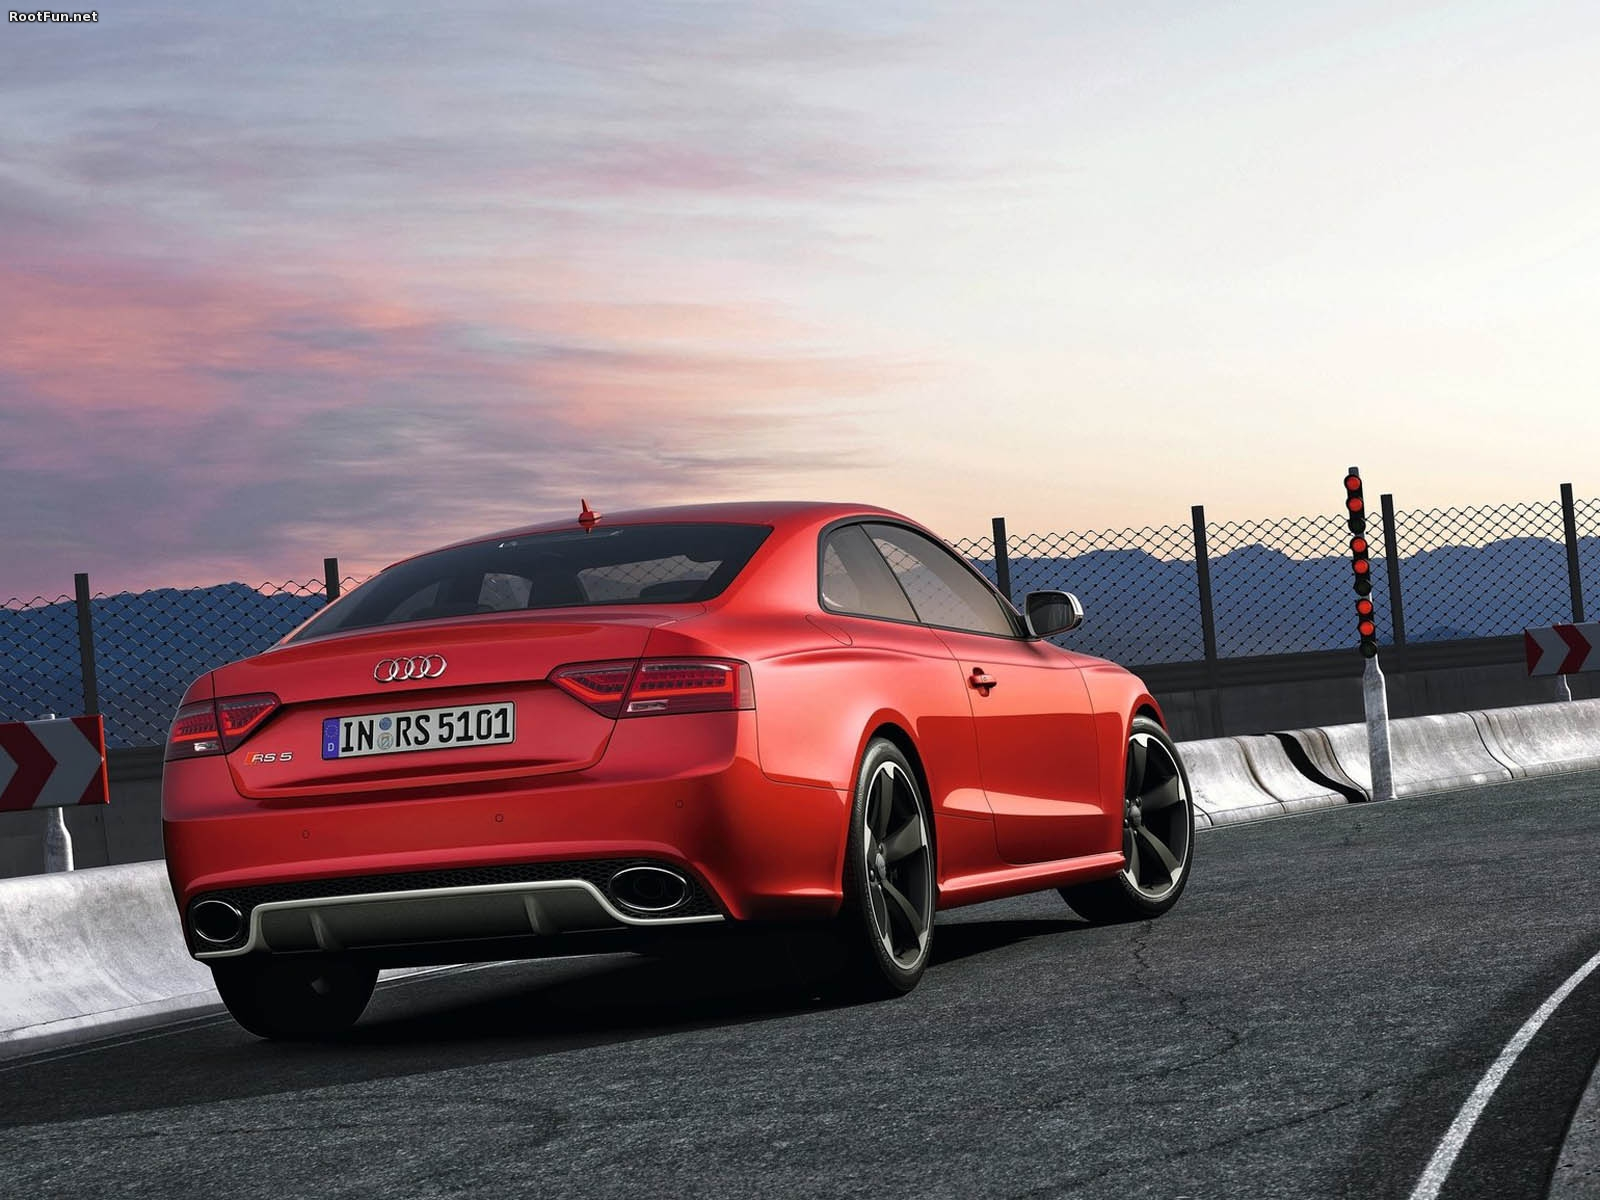 audi rs5 wallpaper download Wallpaper